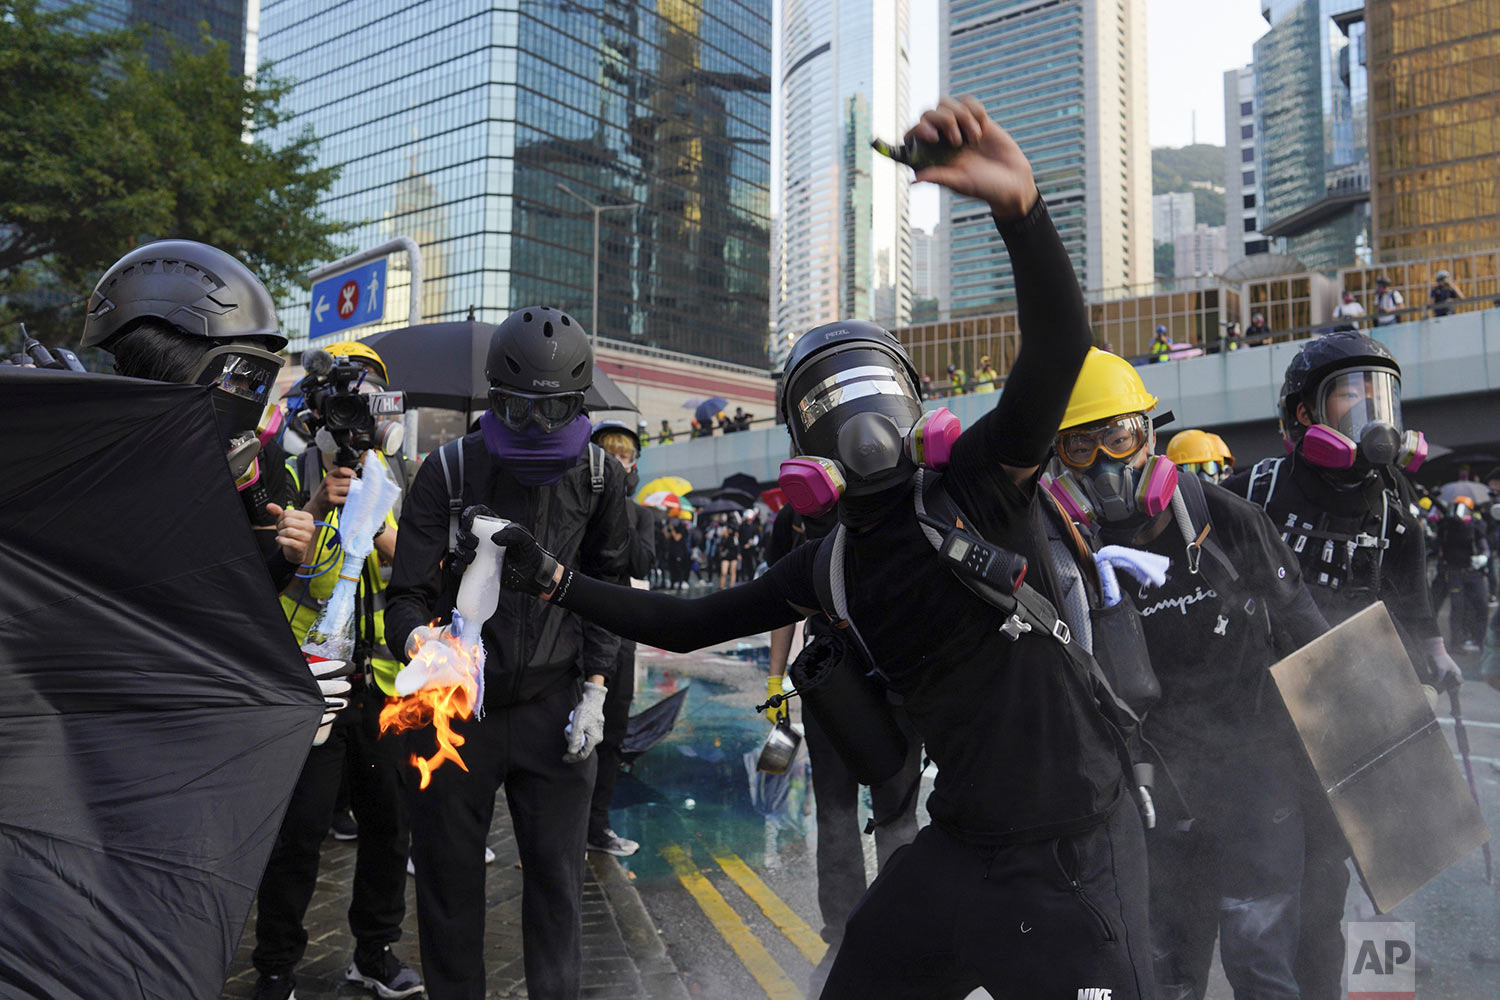 An anti-government protester throws a Molotov cocktail during a demonstration near Central Government Complex in Hong Kong, Sunday, Sept. 15, 2019. (AP Photo/Vincent Yu)